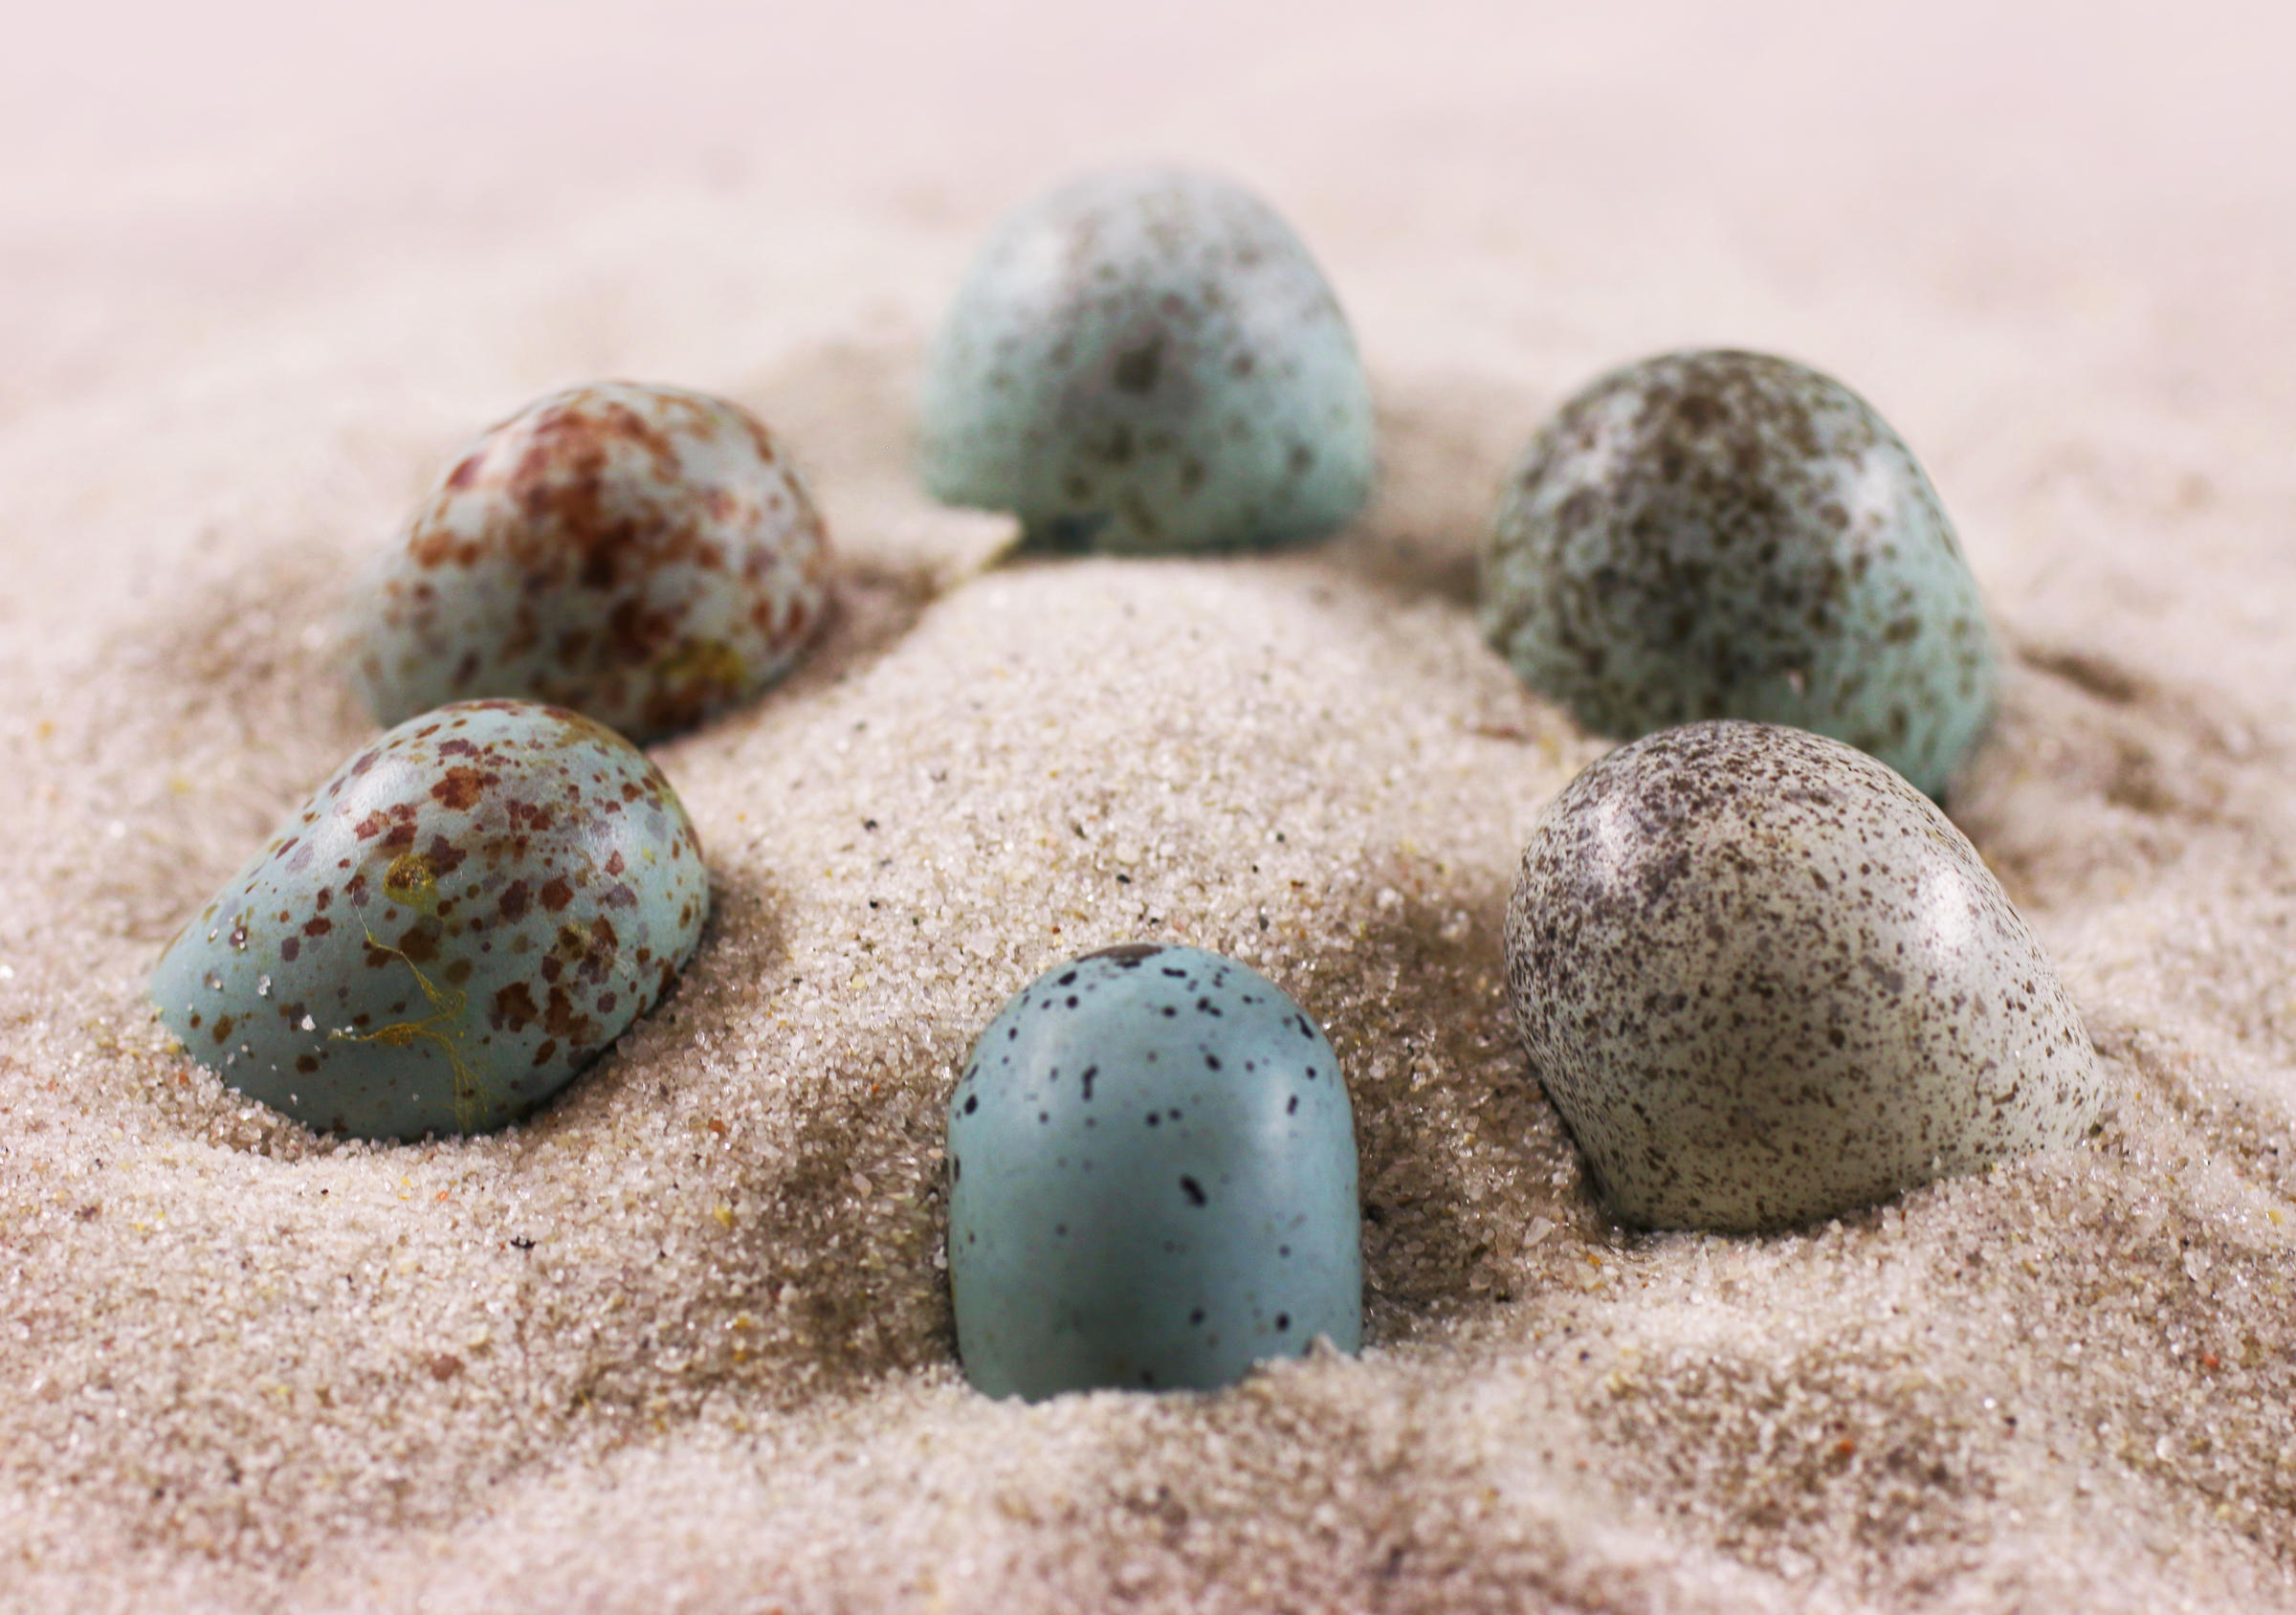 Some dinosaur eggs were blue, brown or speckled